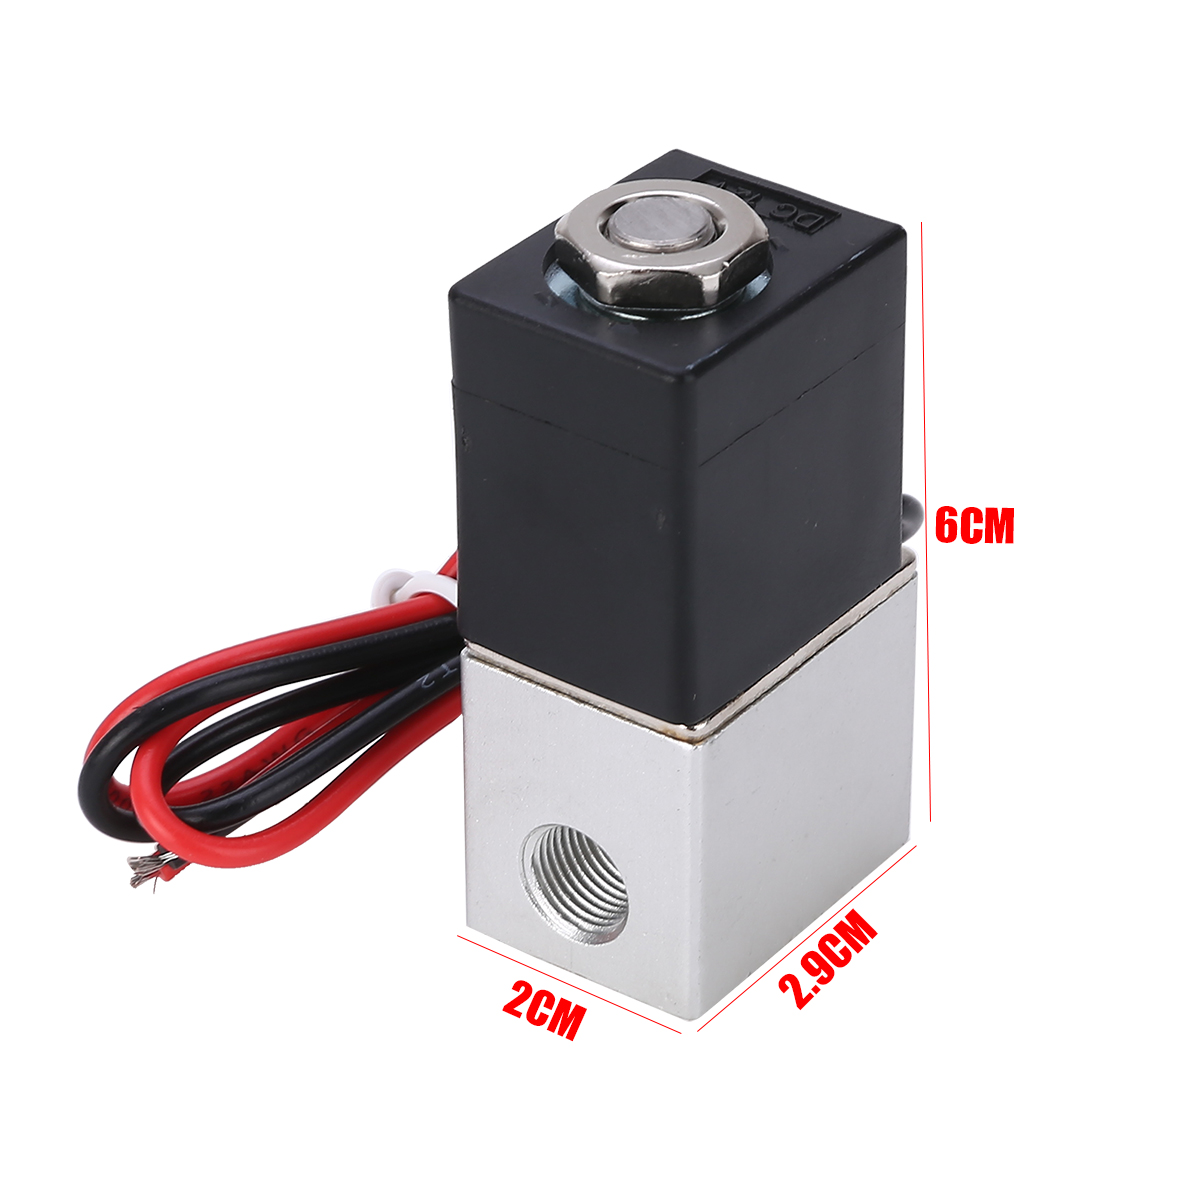 "DC 12V Solenoid Valve 1/8"" Normally Closed 2 Way Quick Release Pneumatic Valves For Water Air Gas Liquid Solenoid Valve"